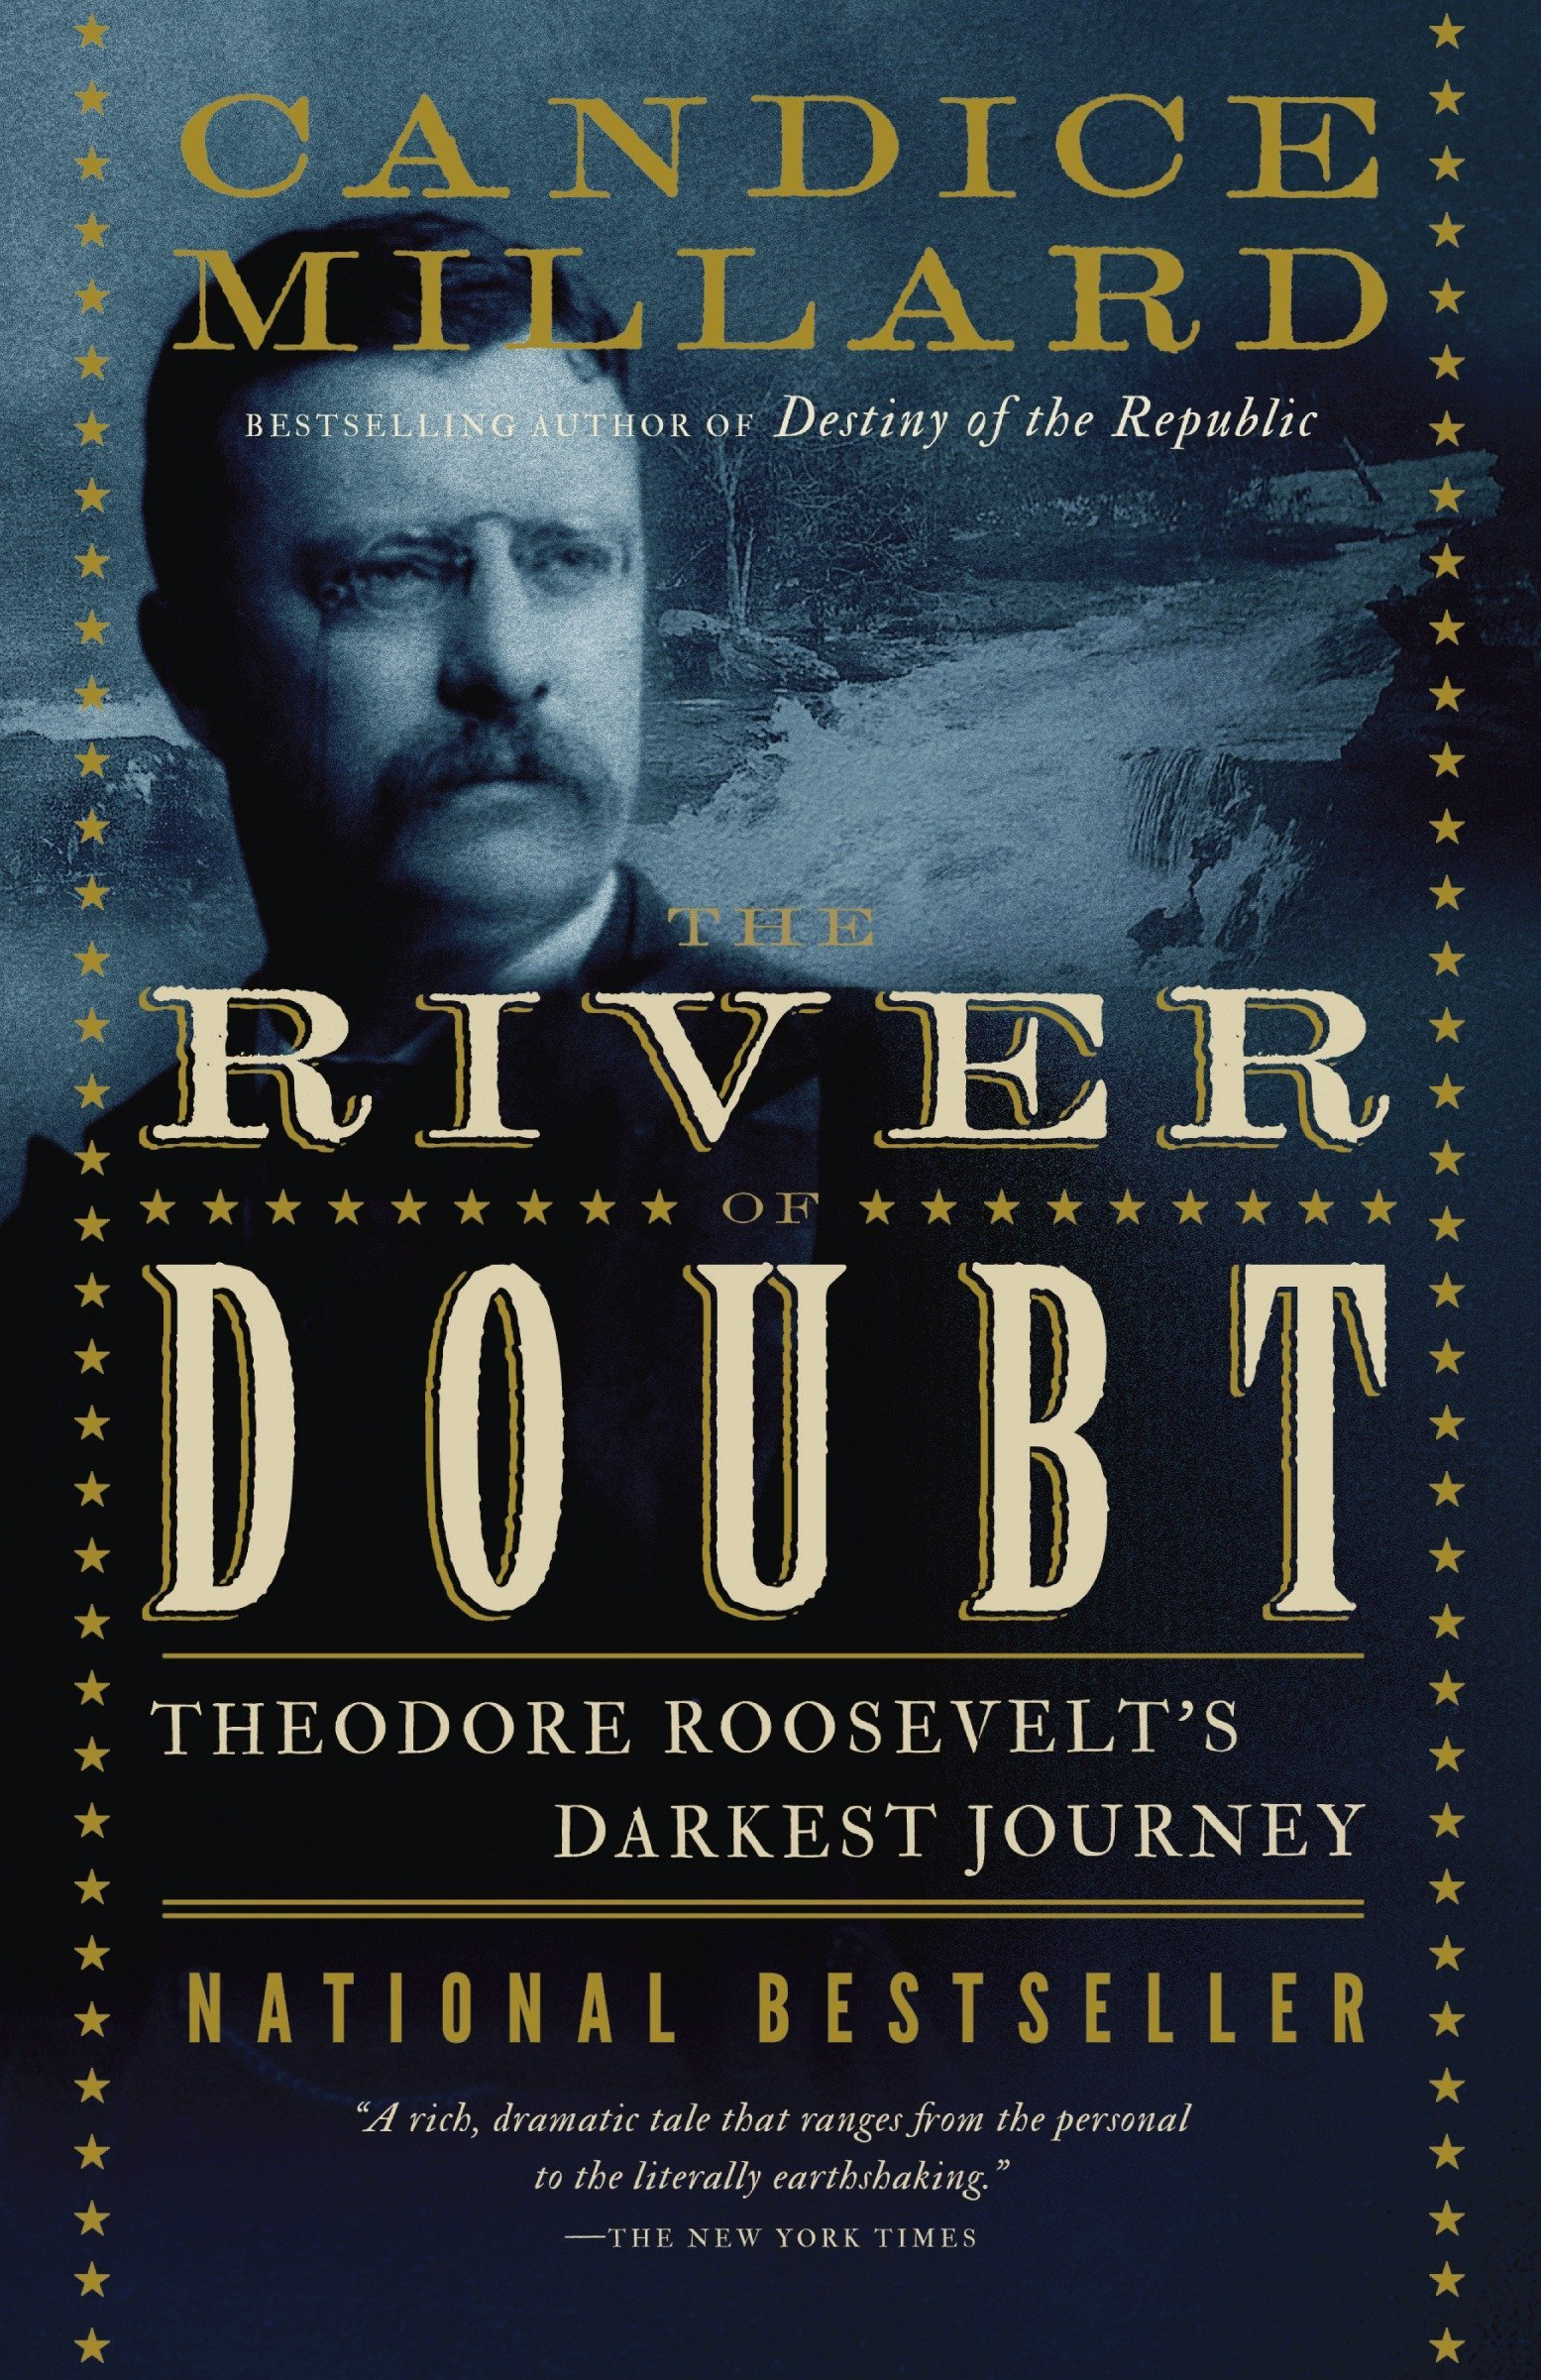 Amazon.com: The River of Doubt: Theodore Roosevelt's Darkest ...